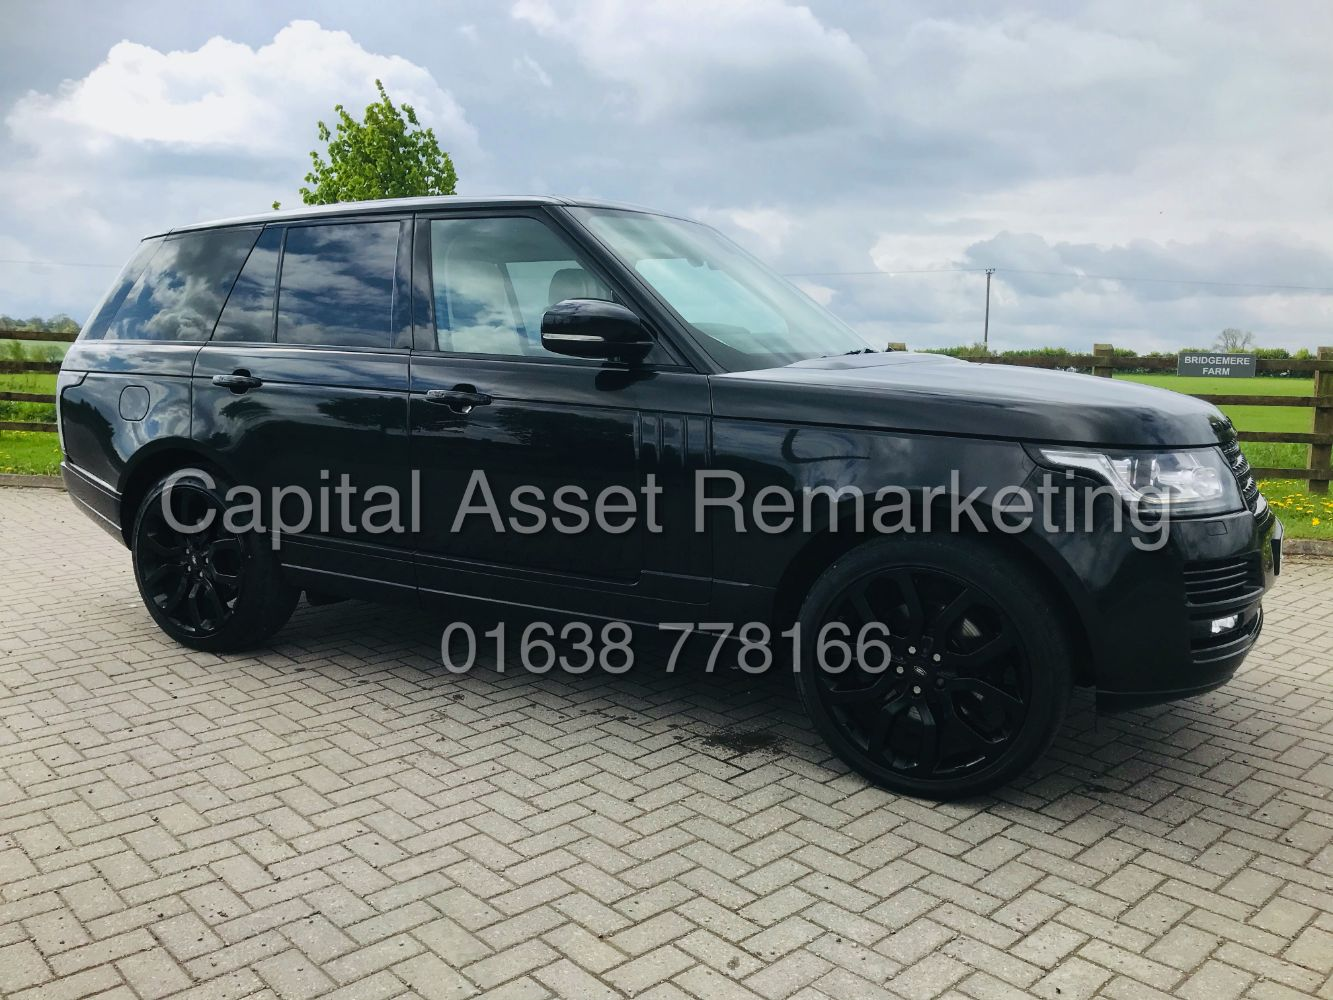 RANGE ROVER VOGUE 3.0SDV6 (NEW SHAPE) - 2017 MERCEDES B180d AMG -LINE - A GREAT SELECTION OF LATE  MODEL  VANS COMMERCIALS AND CARS -TAKE A PEEK